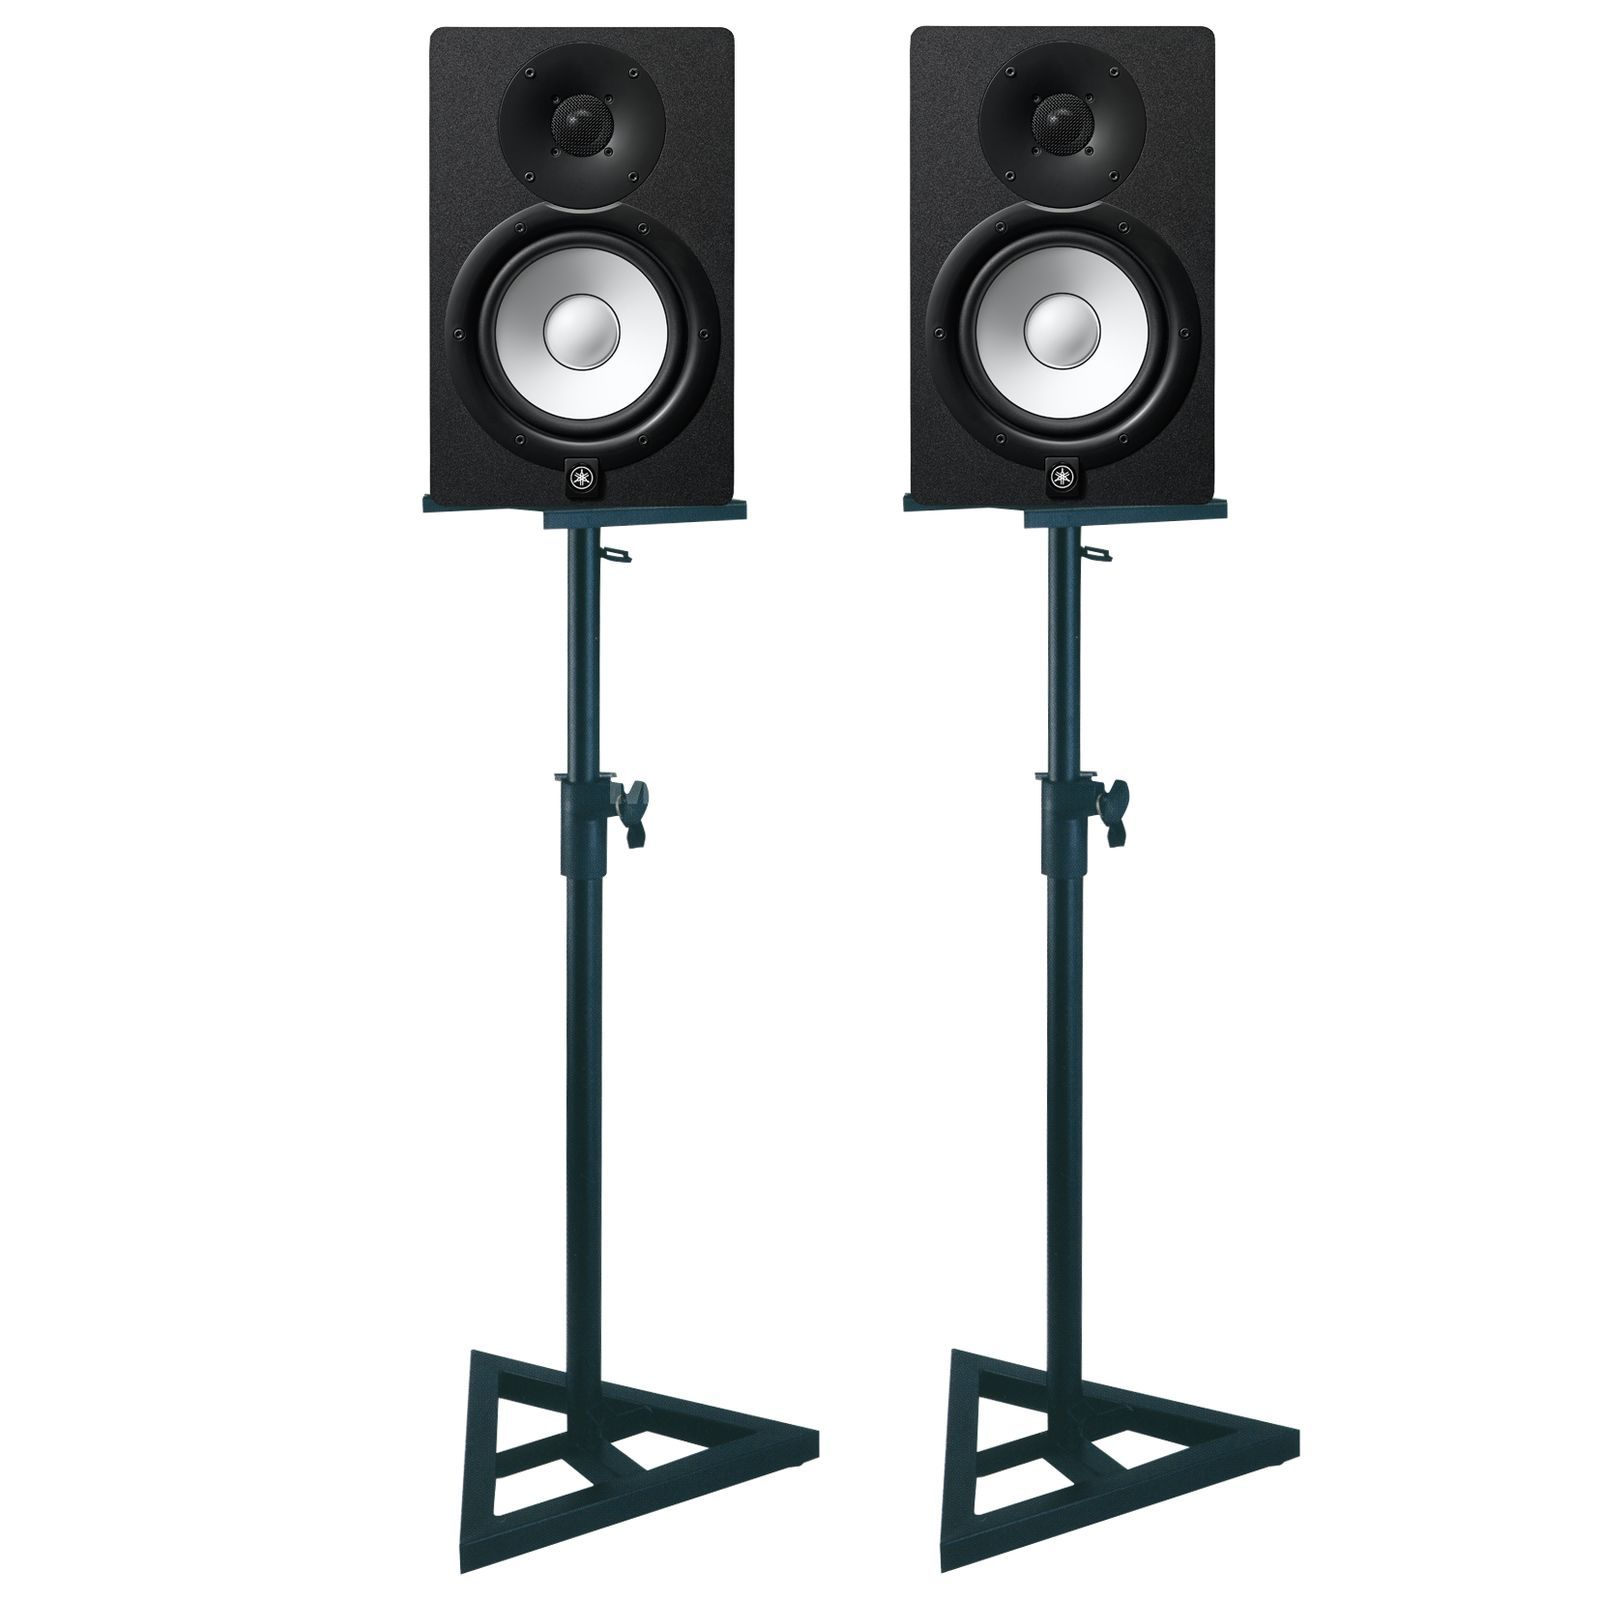 SET Yamaha HS 7 + DB 039 SET Monitor + Stands Produktbild